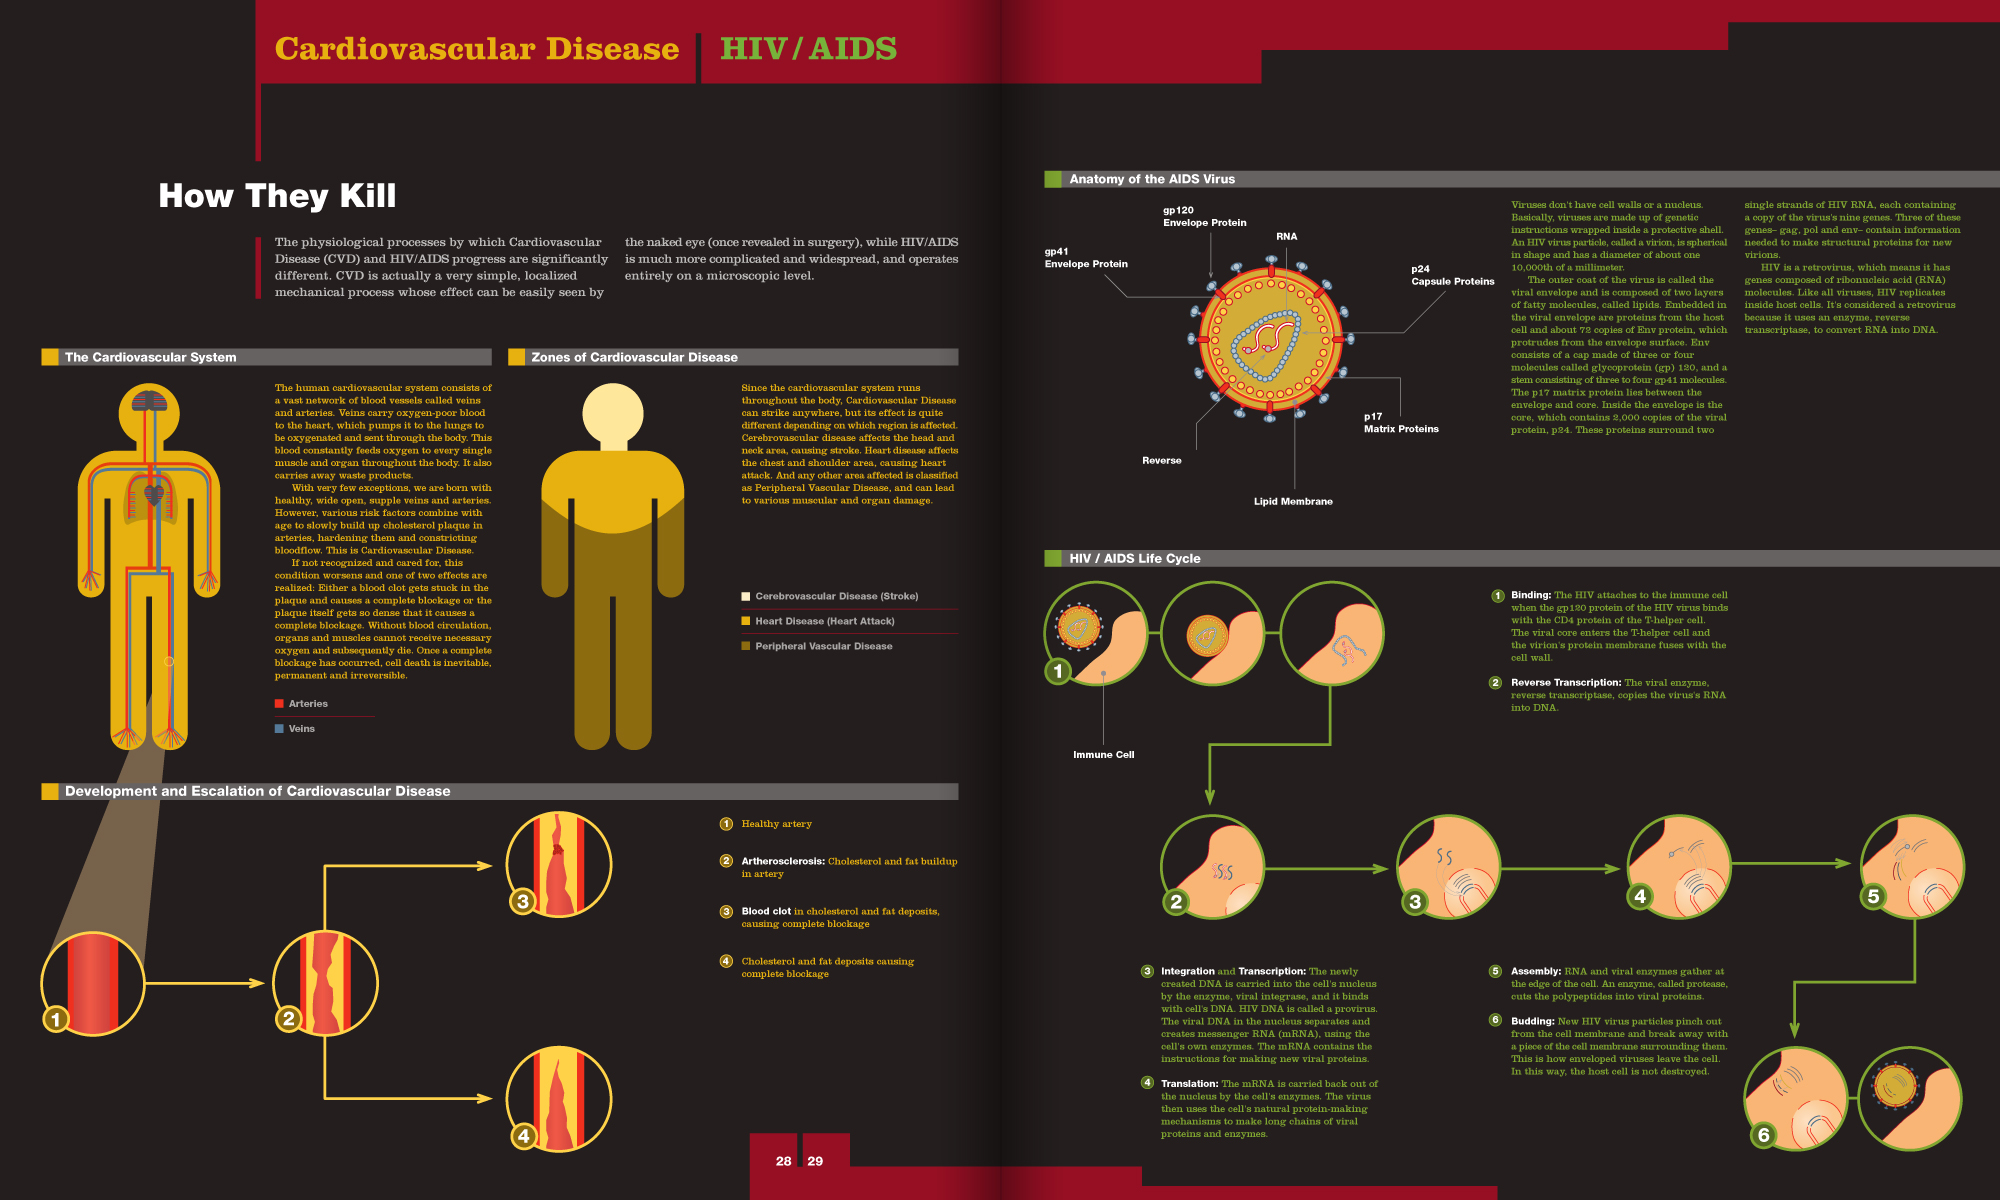 magazine article segment comparing how Cardiovascular Disease and HIV/AIDS affect the body